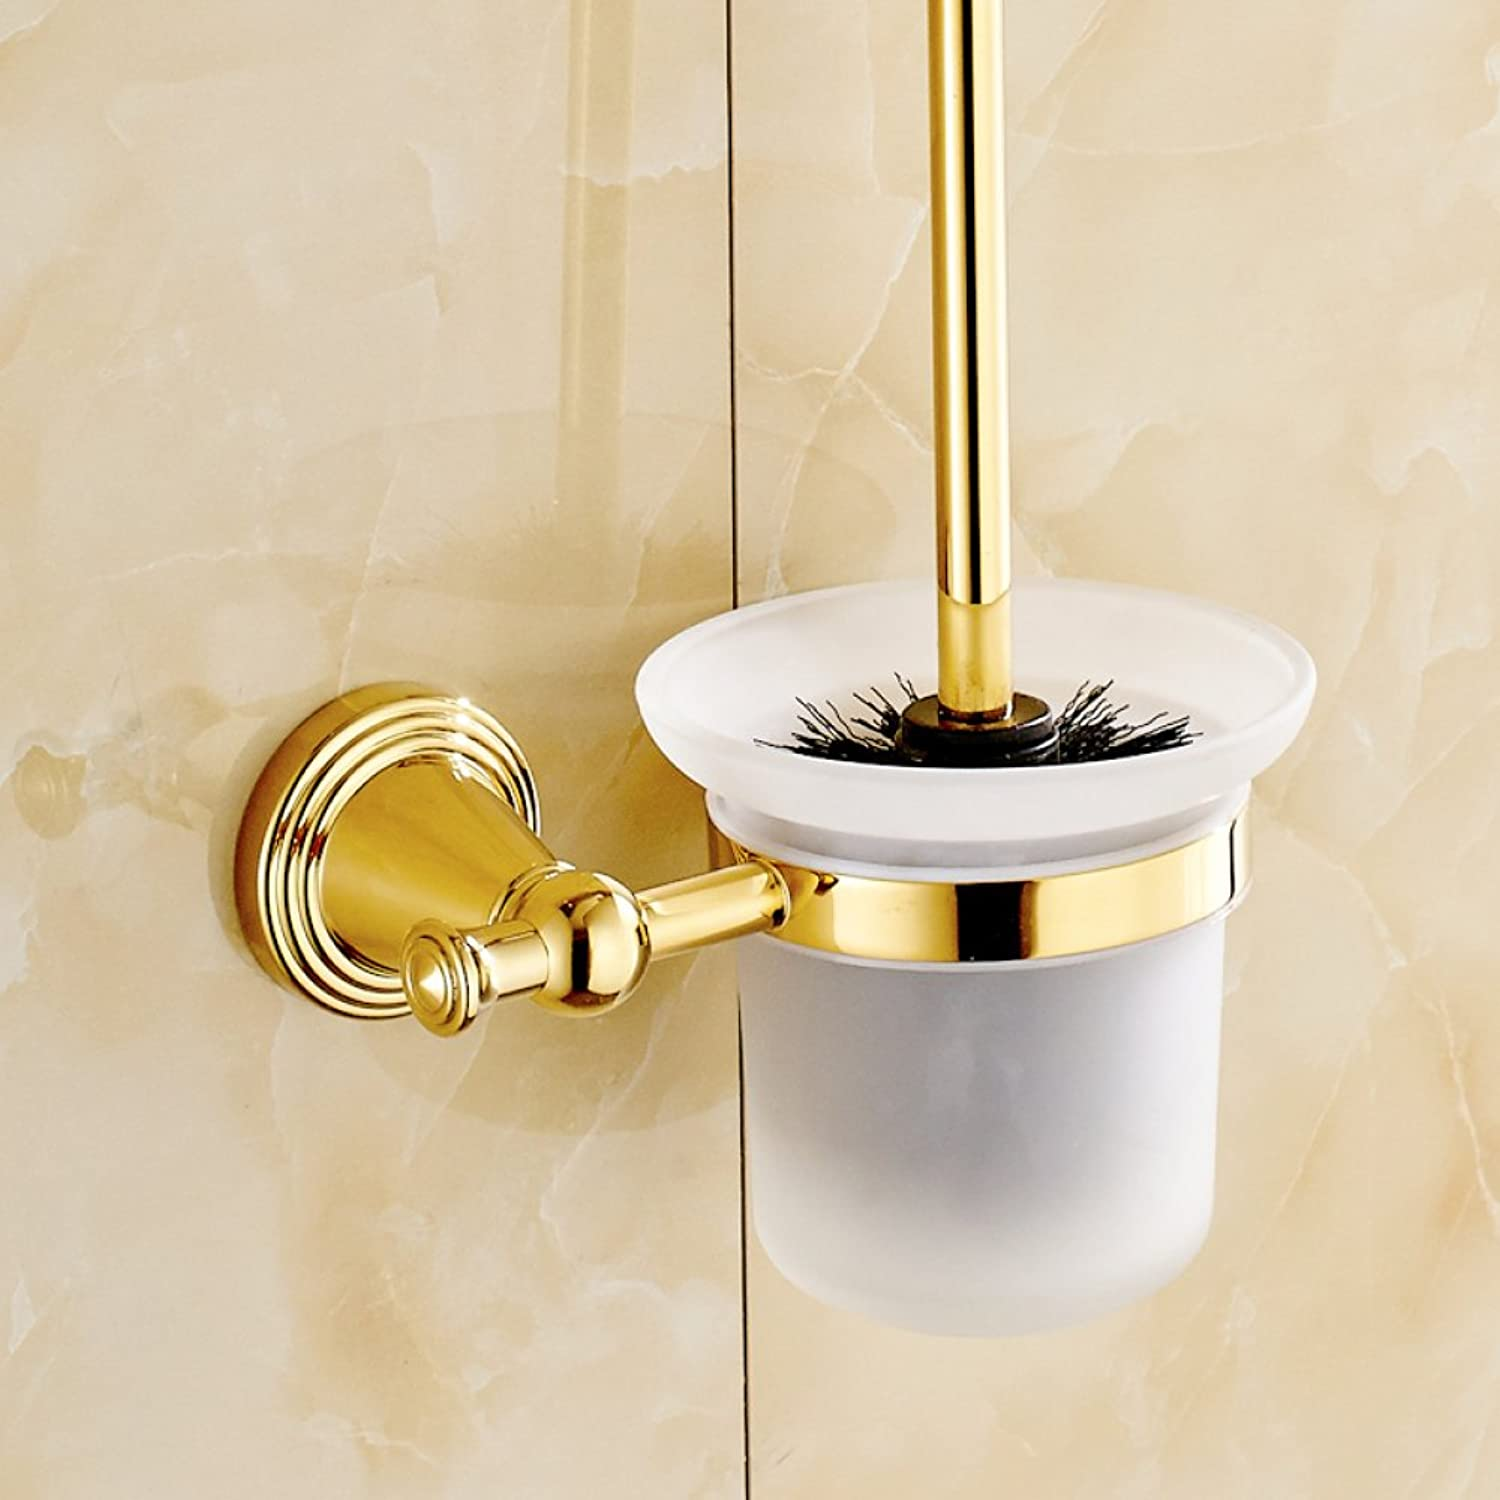 ZXY Toilet brush set Wall Mounted European-style copper-plated toilet brush, ceramic   frosted cup toilet brush holder,B